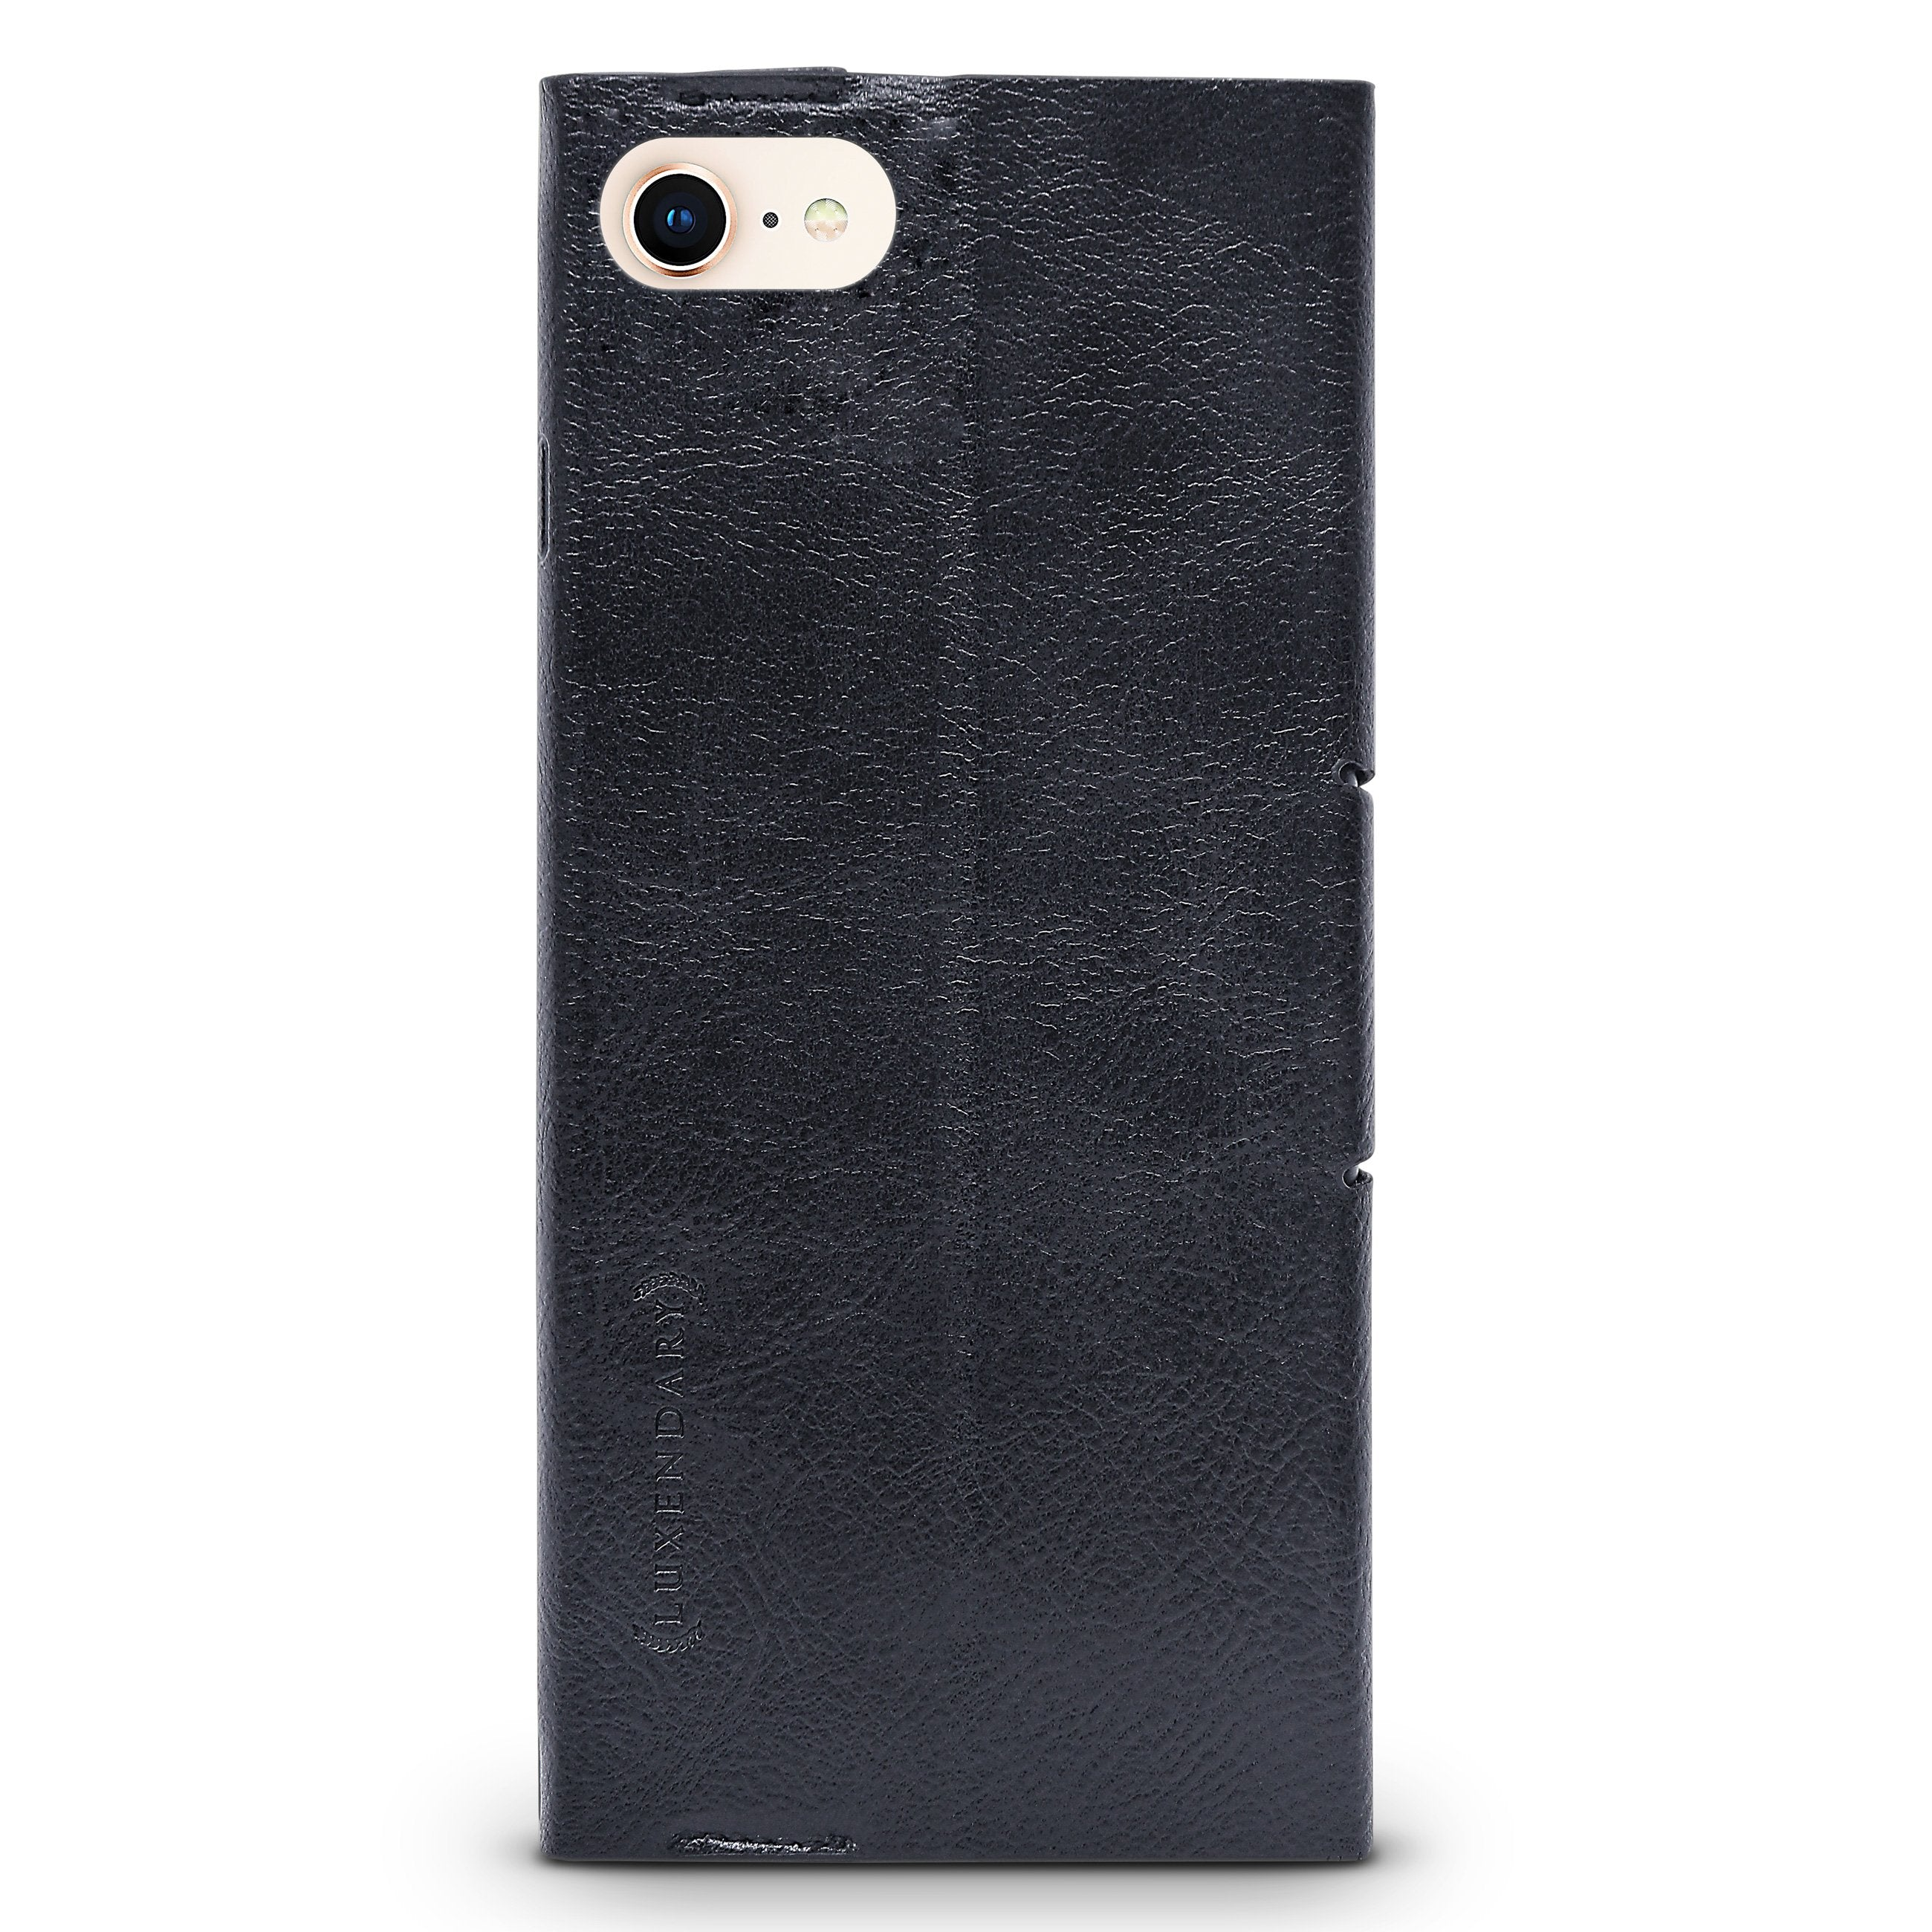 Rosa, Hand-Written First Name | Leather Series case for iPhone 8/7/6/6s in Hickory Black